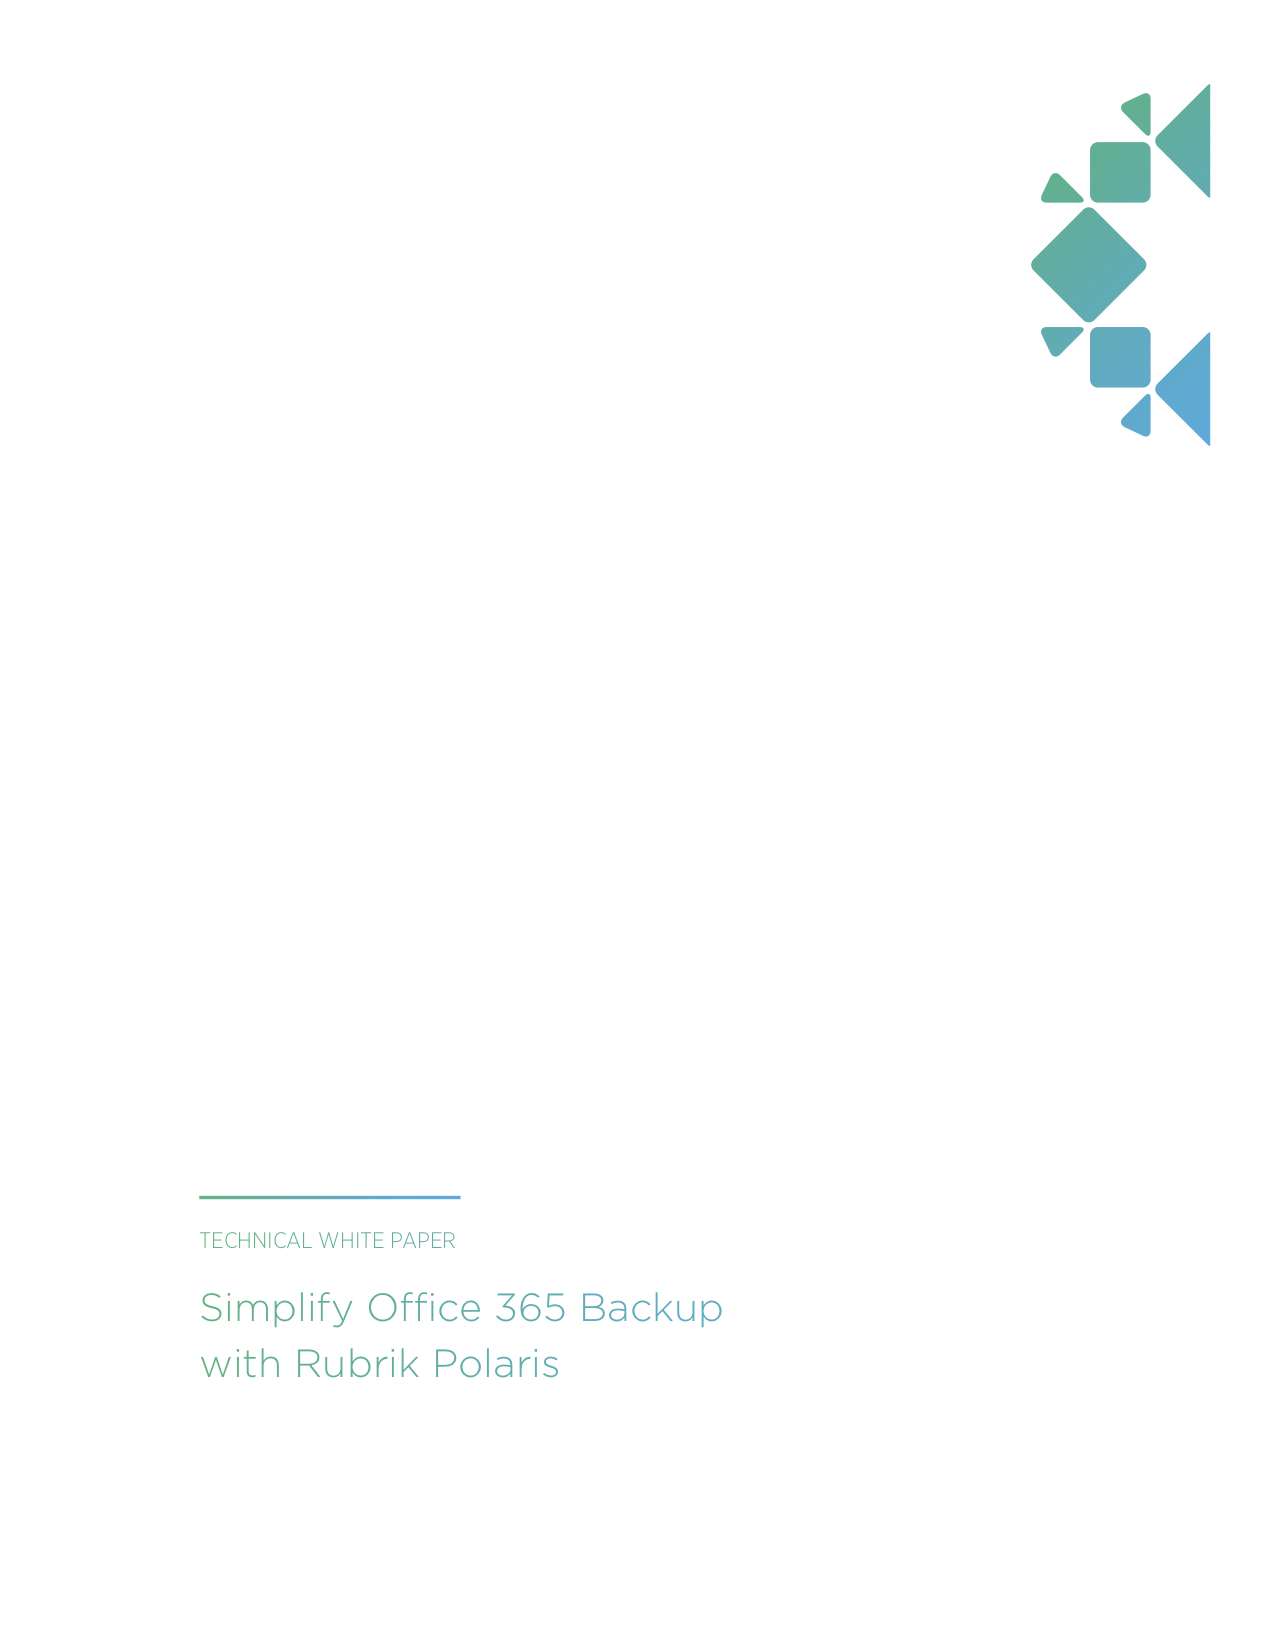 Simplify_O365_Backup_with_Rubrik_Polaris_20181130